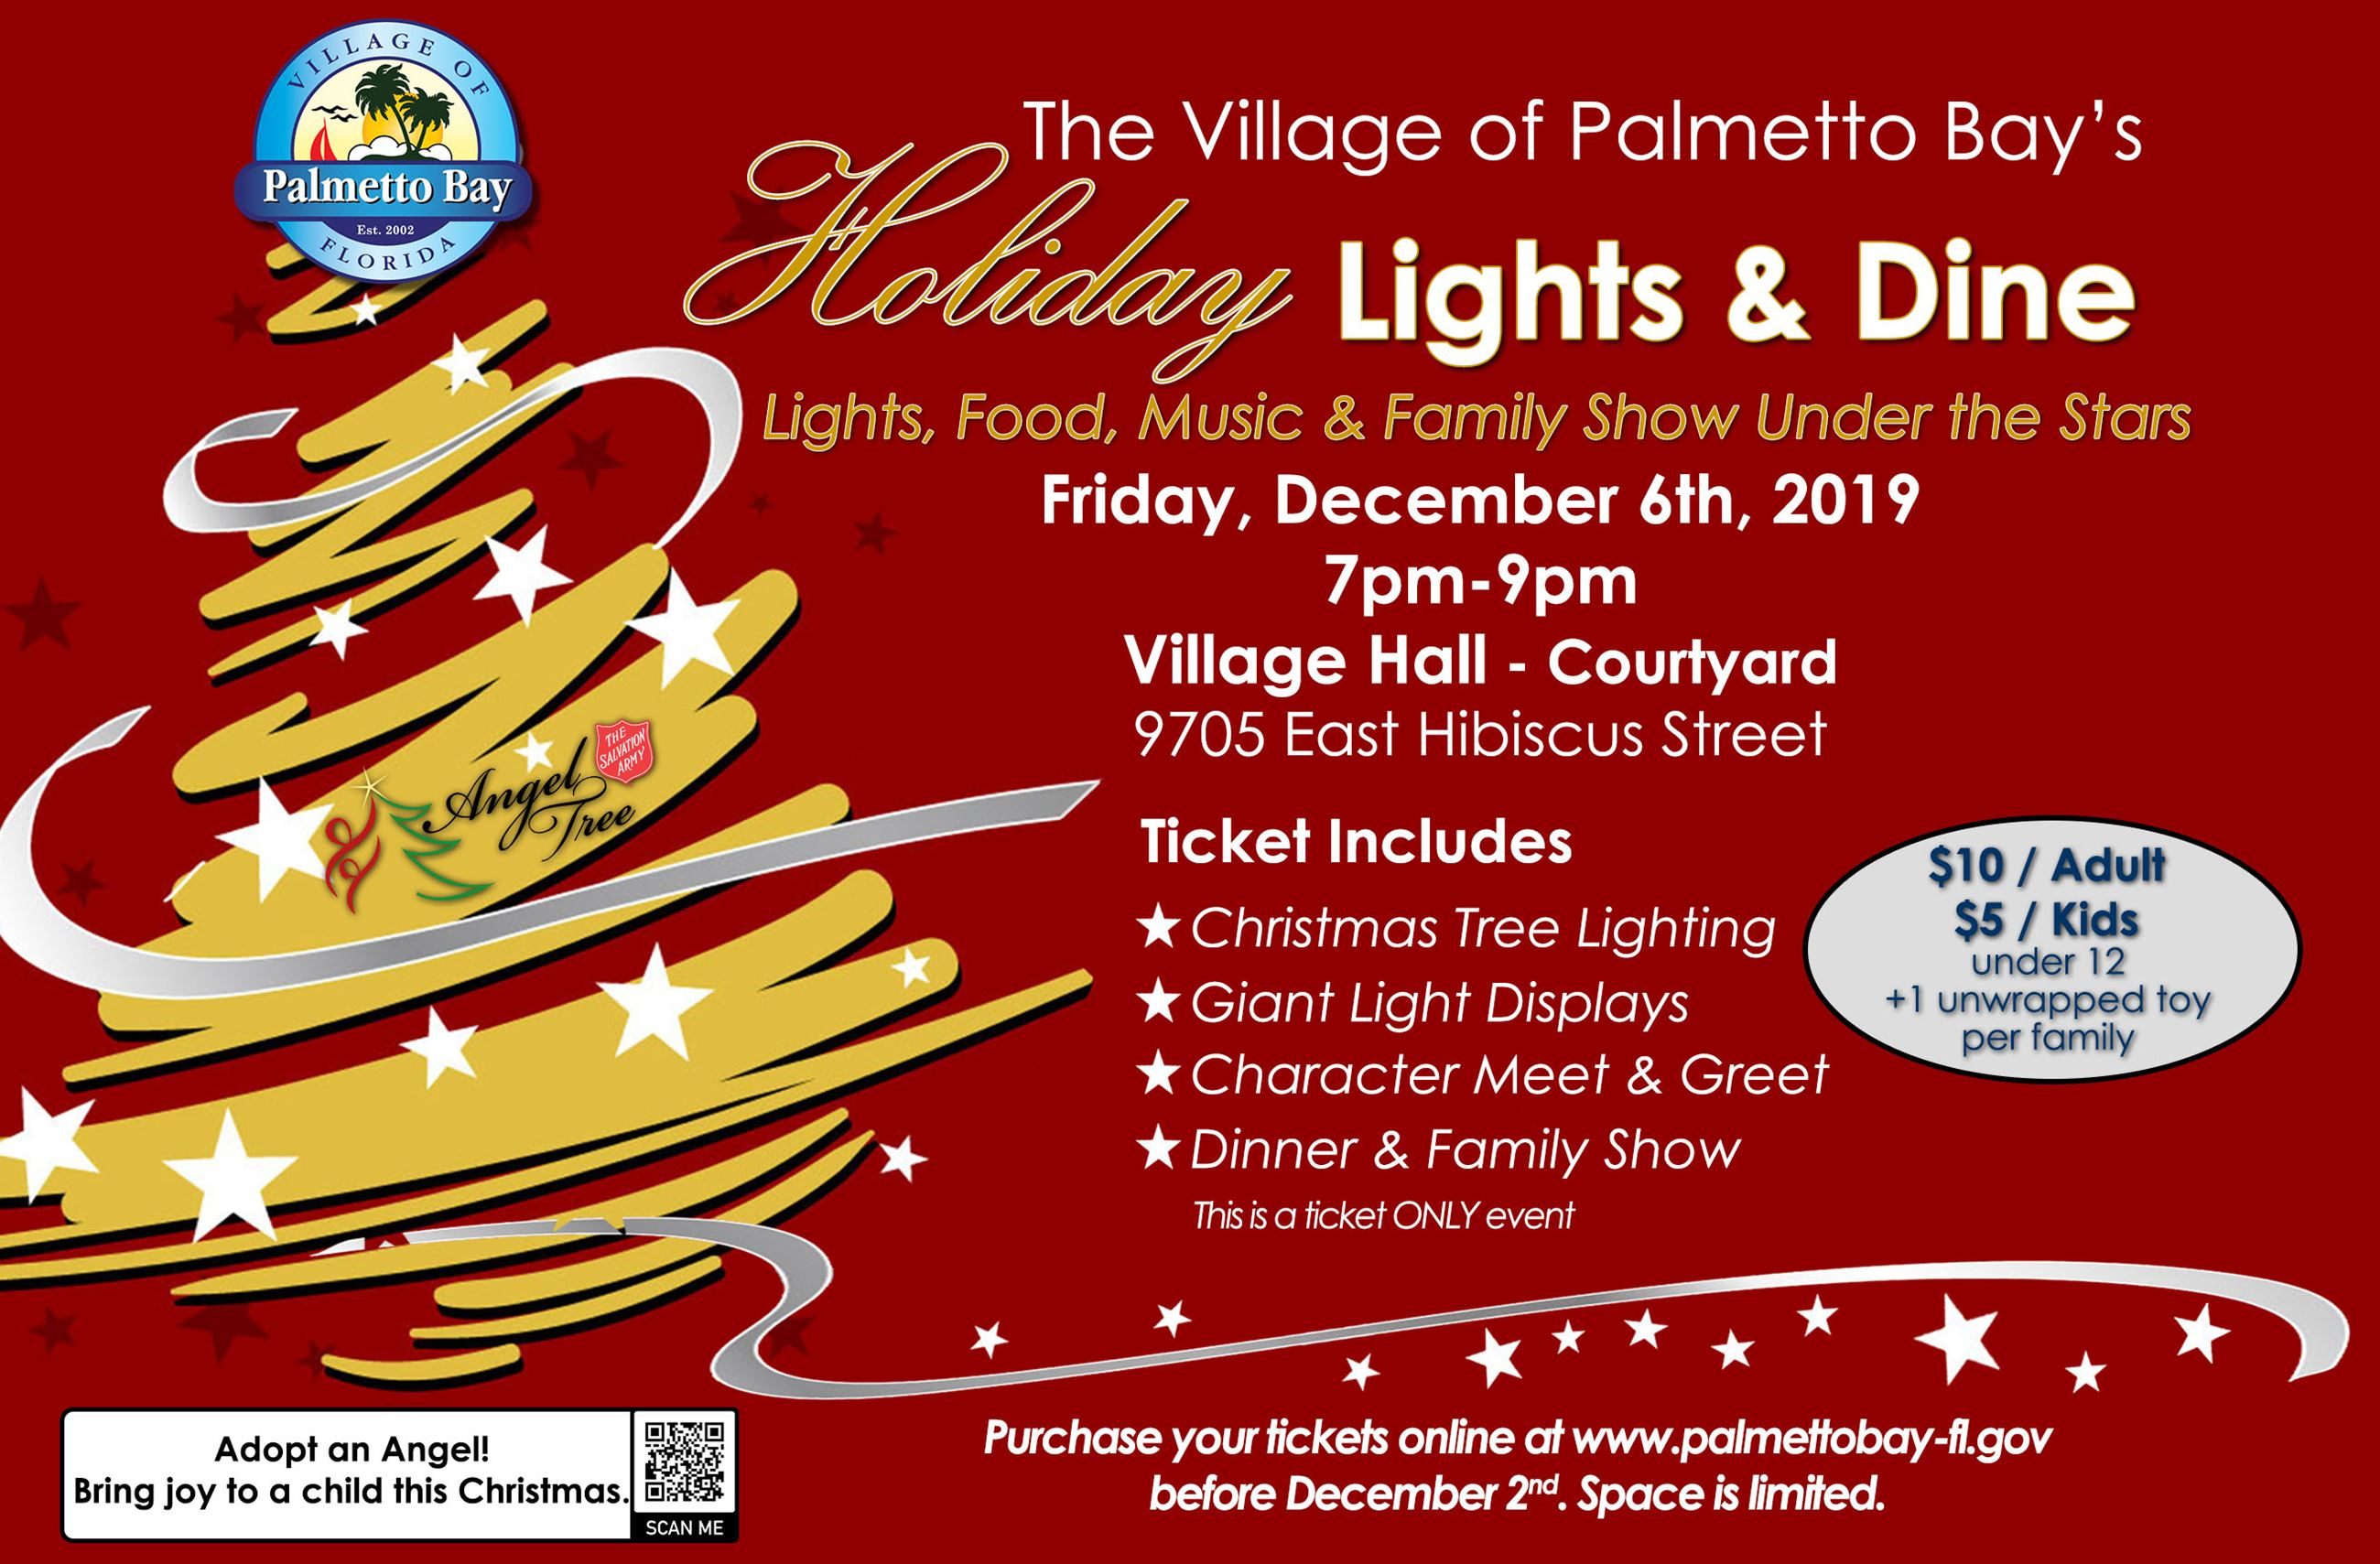 The Village of Palmetto Bay's Holiday Lights & Dine. Lights, Food, Music & Family show under the